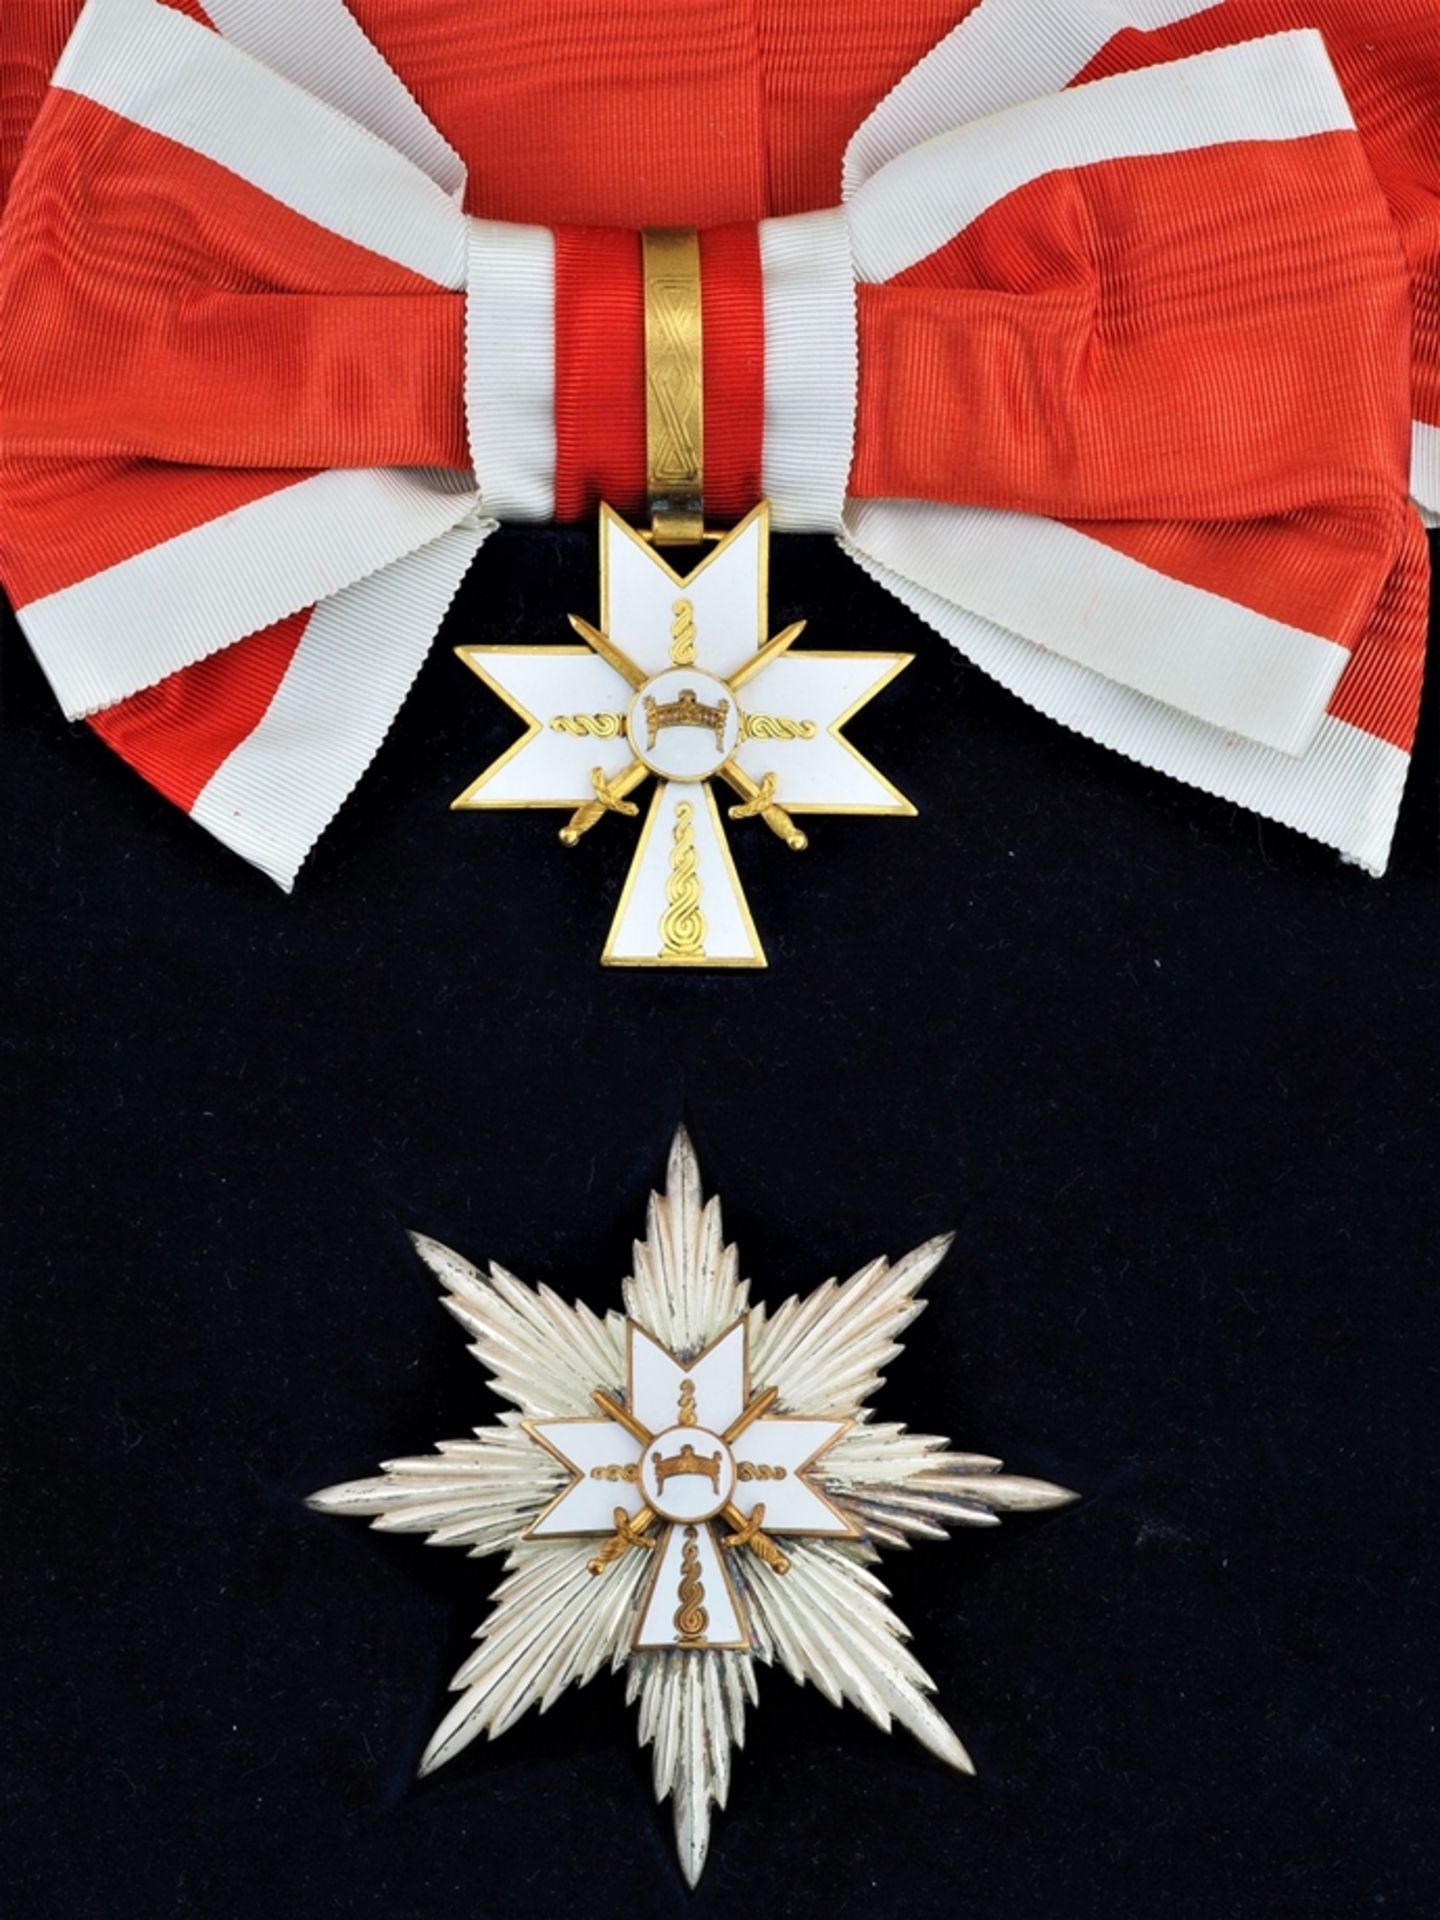 World War 2, Third Reich, Medals & Decorations Legacy: Commanding General of the Luftwaffe (Wehrmac - Image 14 of 27